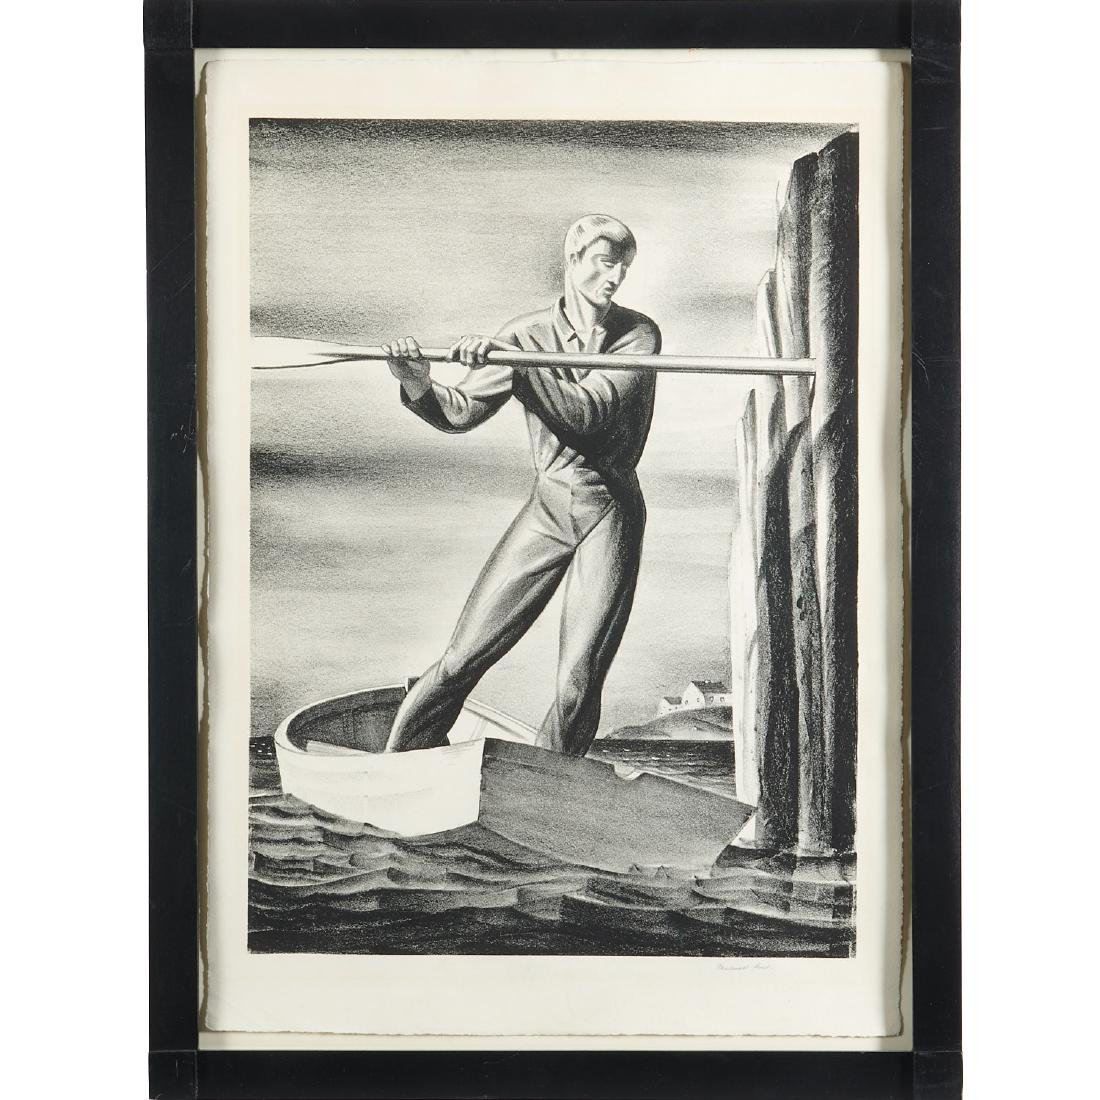 Rockwell Kent, lithograph